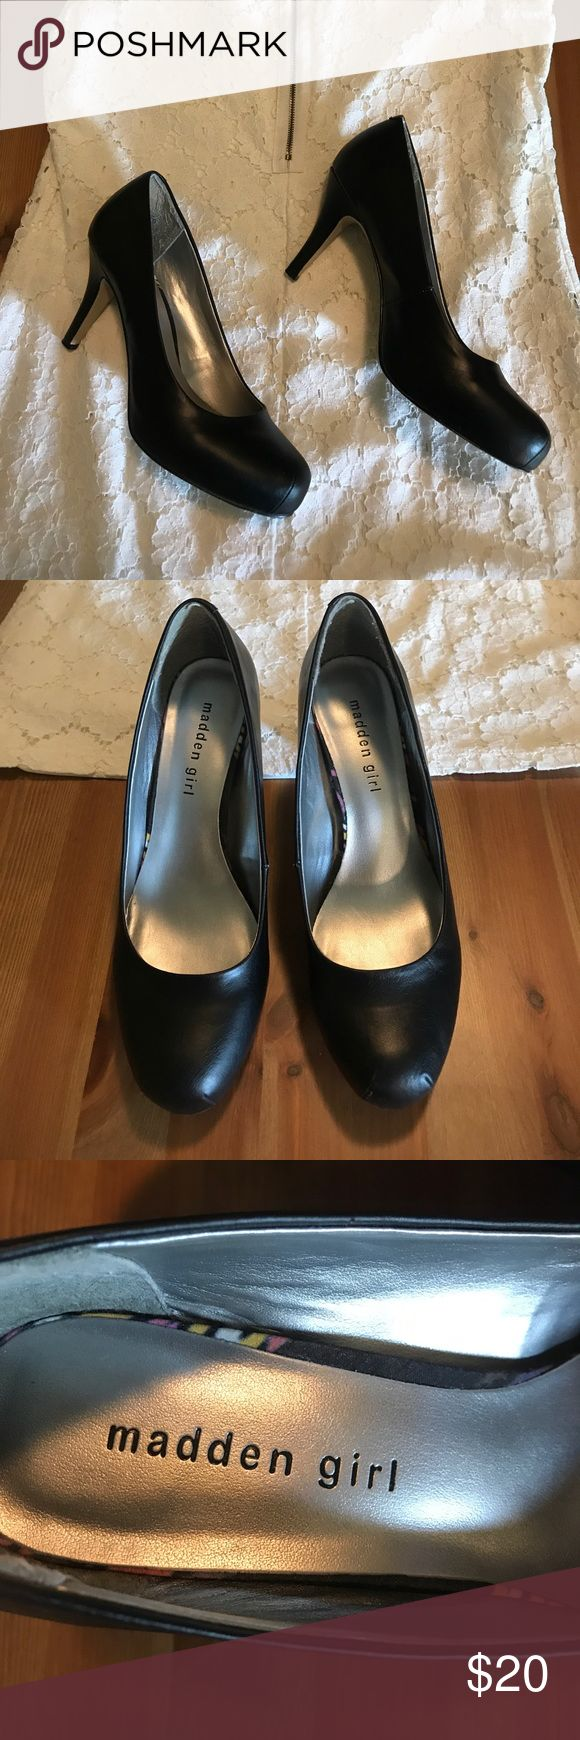 Madden Girl black heels Madden Girl by Steve Madden black heels. Pre-loved but in excellent condition! Questions just ask! Steve Madden Shoes Heels